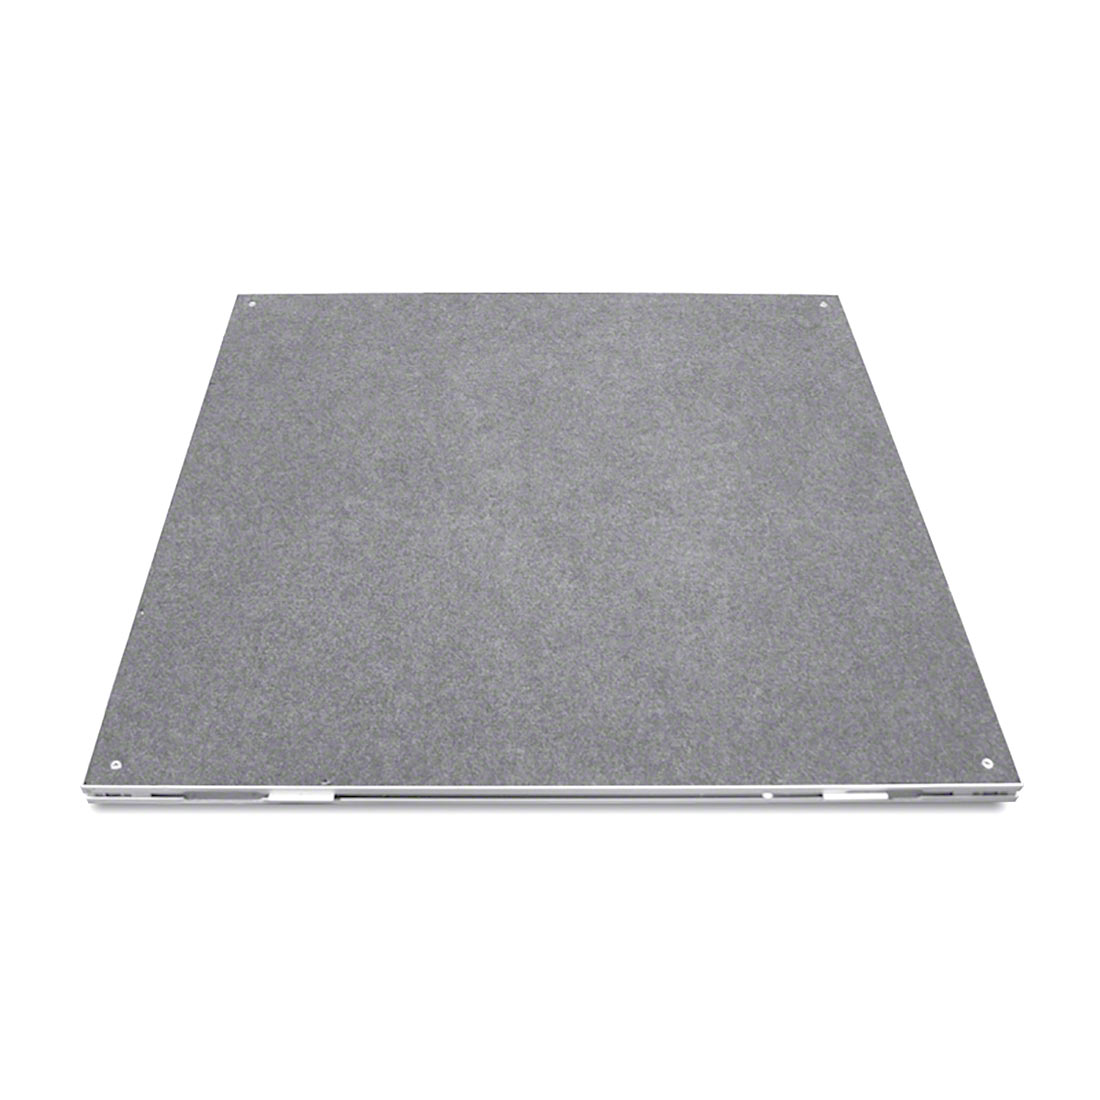 ISP3X3CD - Carpeted